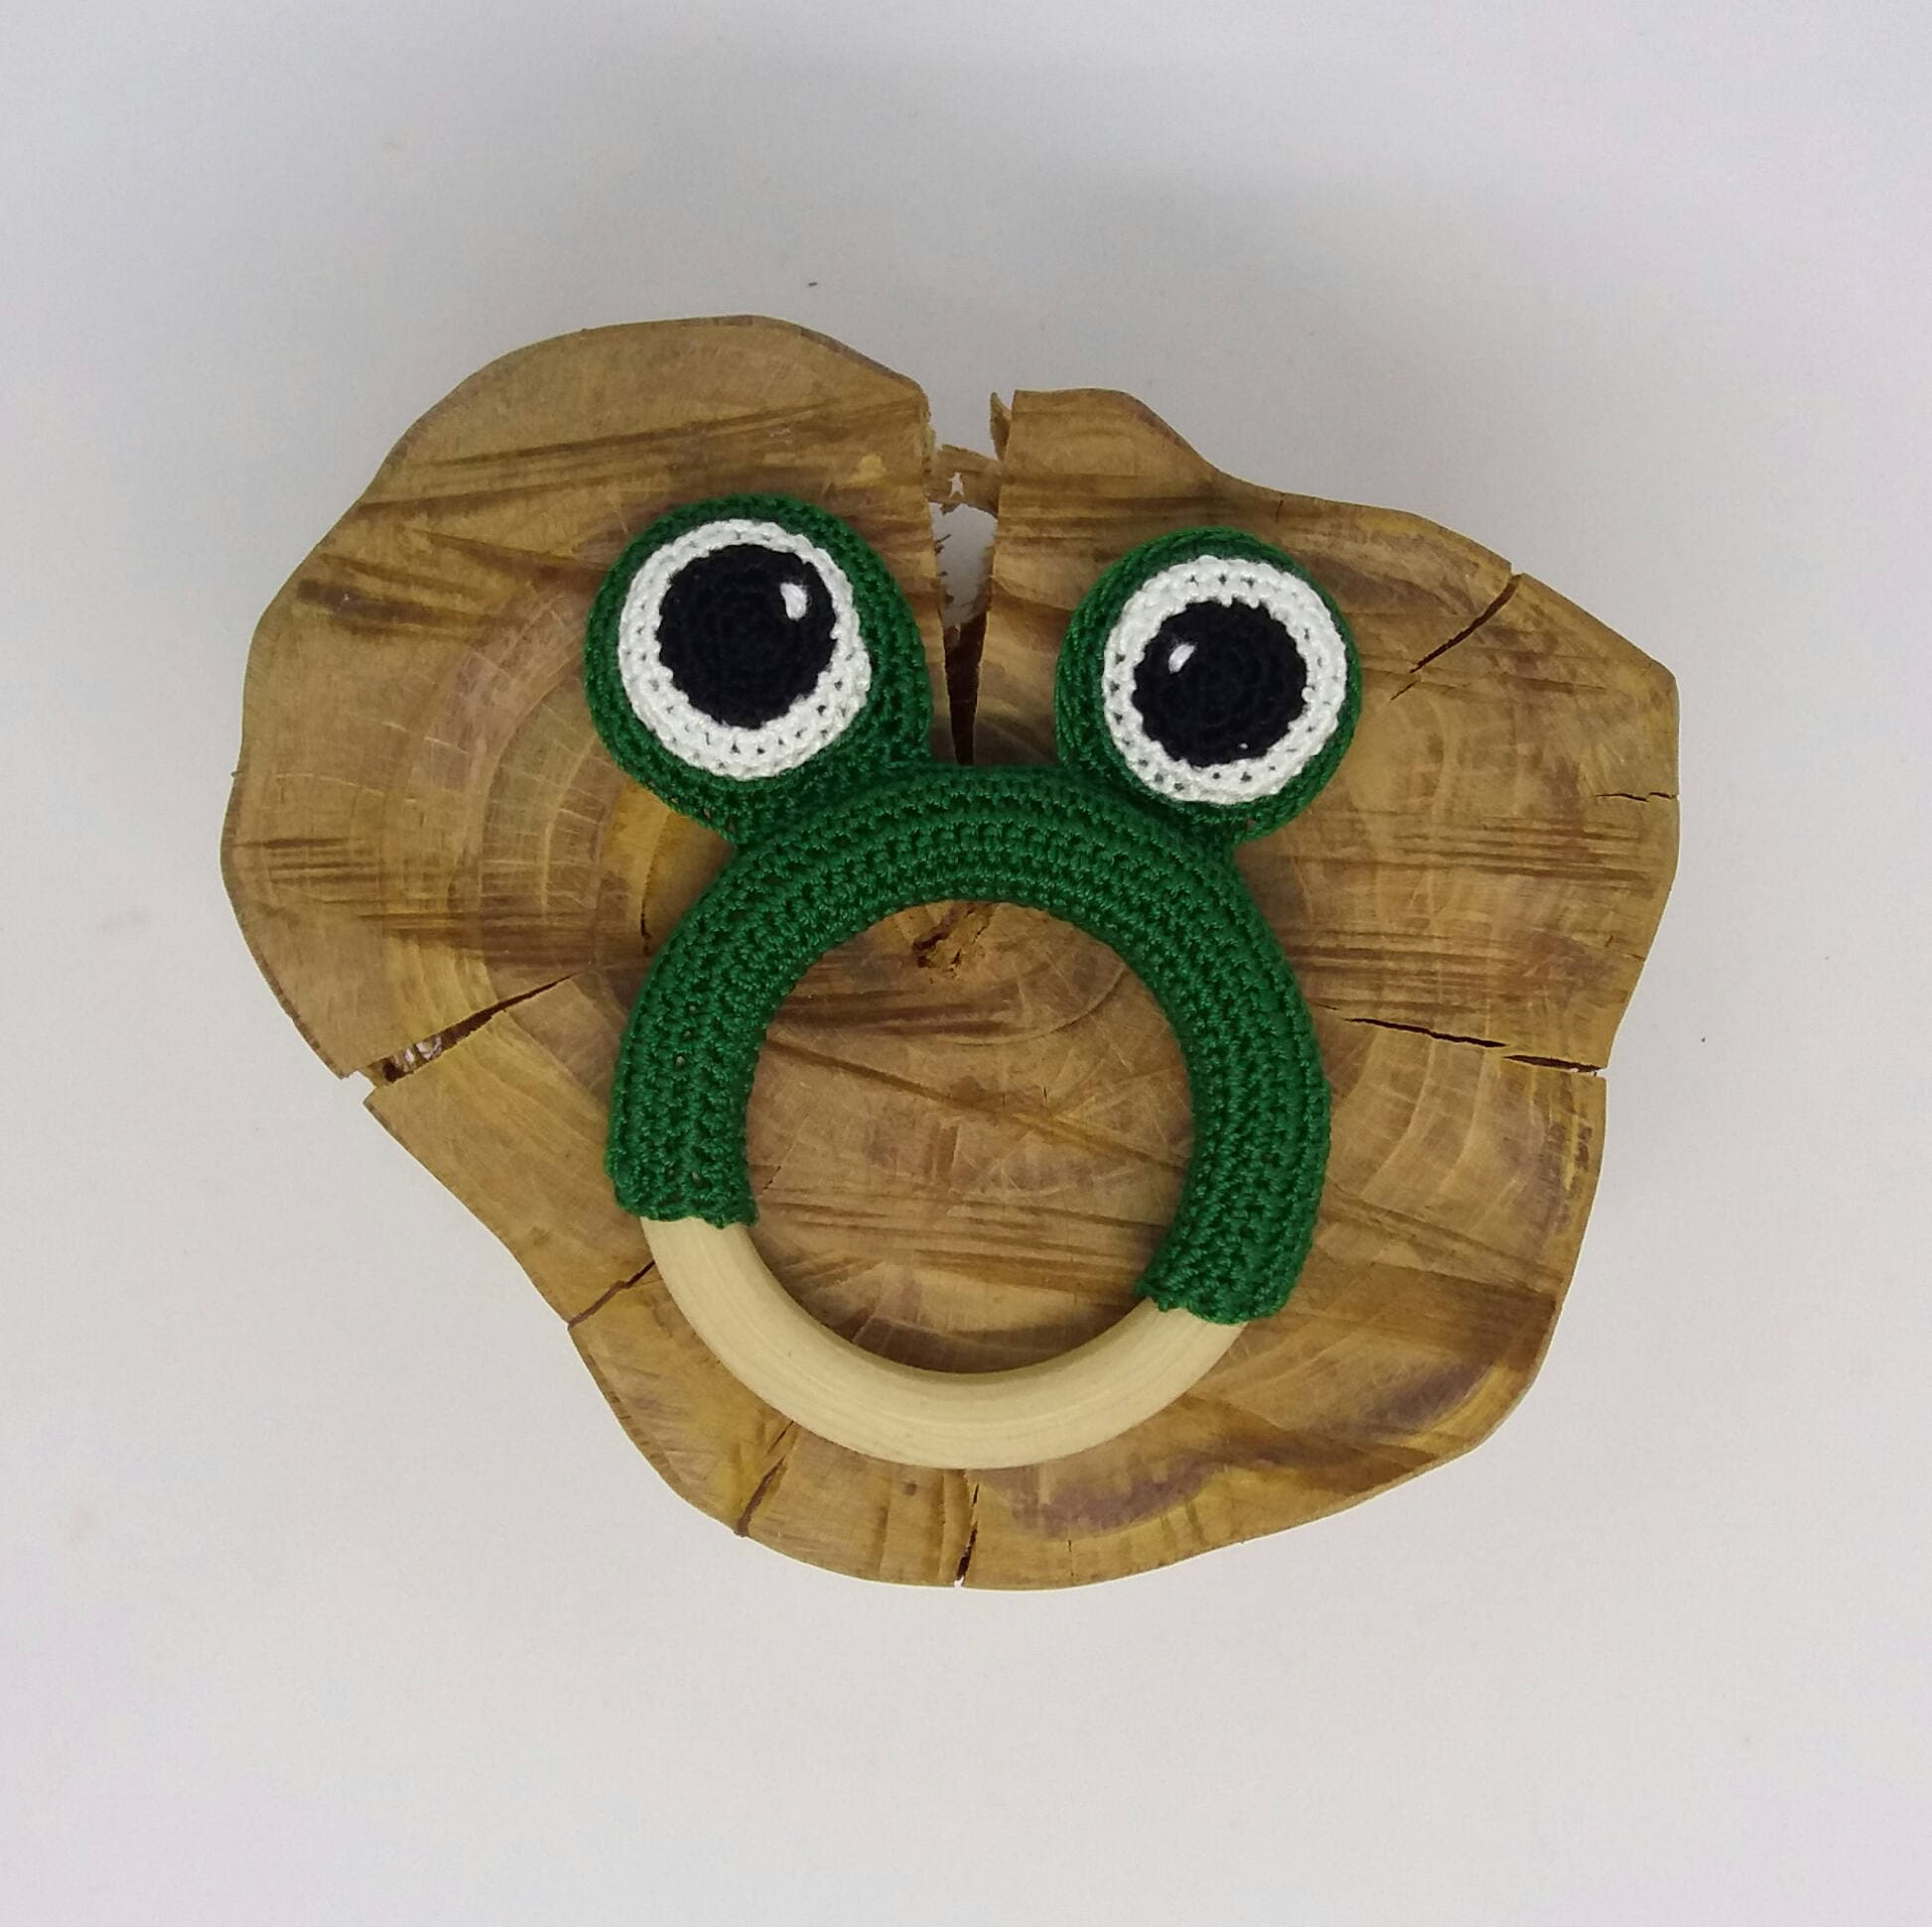 Frog teether toy/frog teething toy/frog baby toy/crochet frog/wooden ...